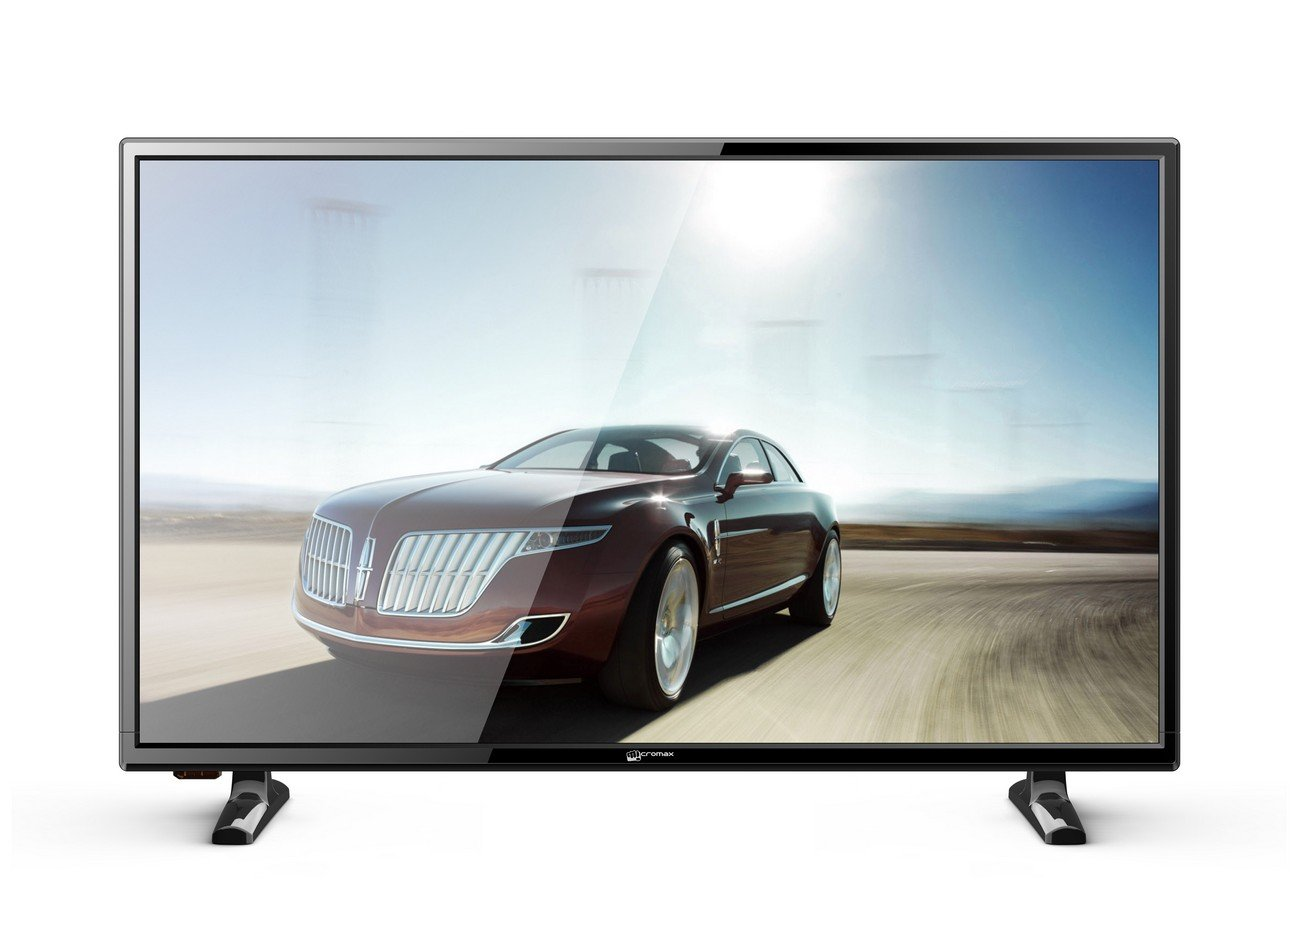 Micromax 24 inch led tv